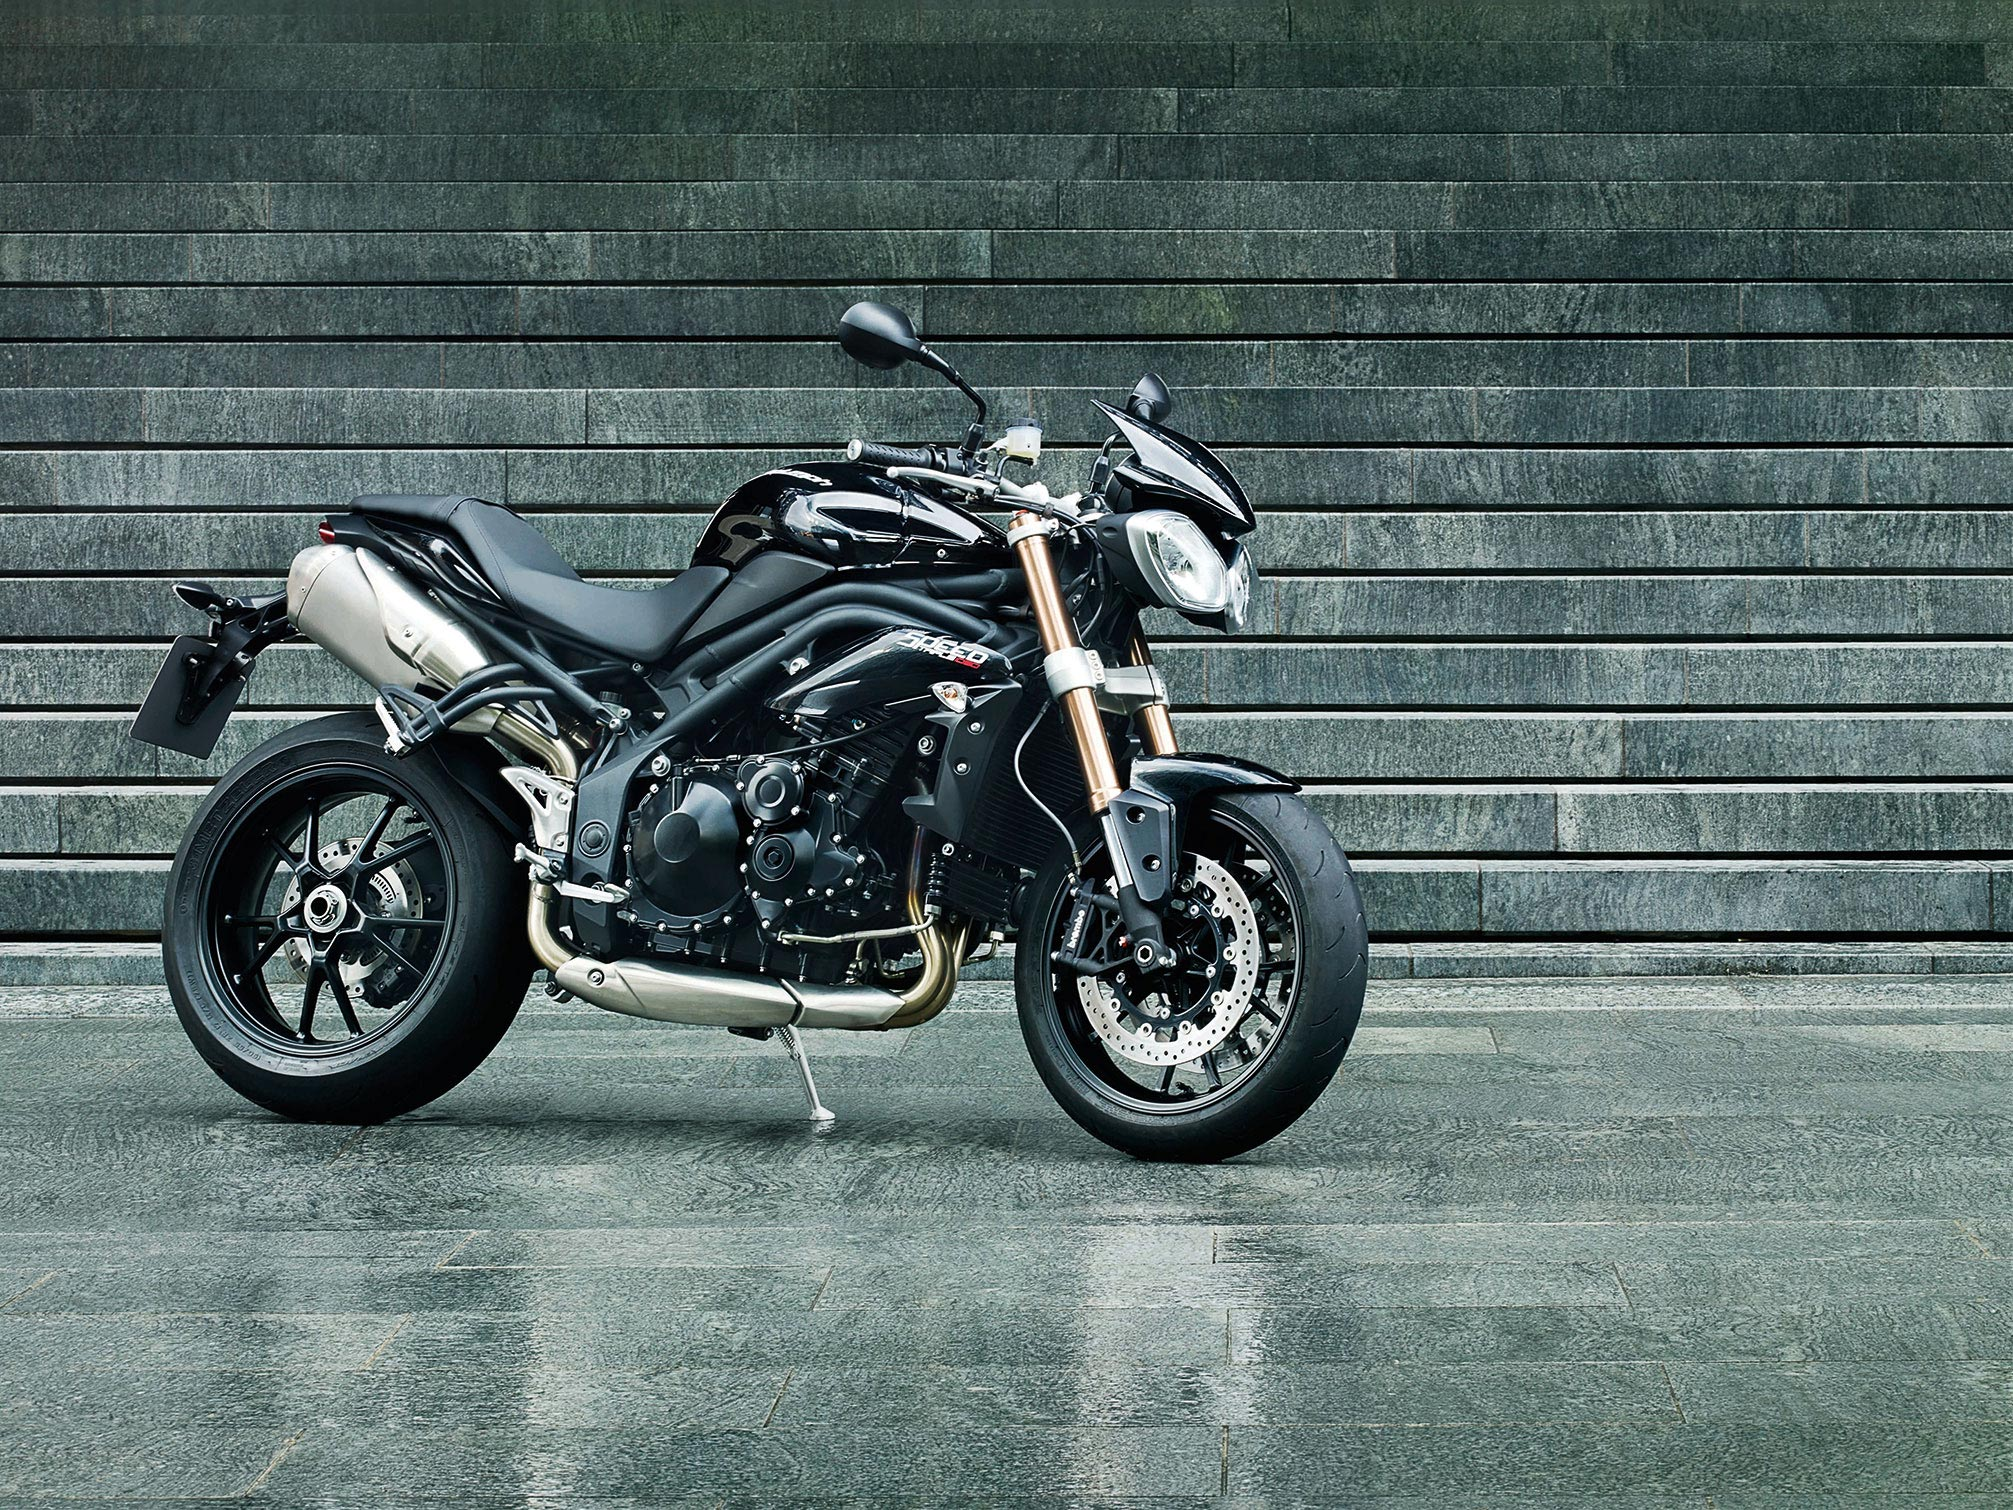 triumph speed triple 2013 release date More capacity, more power, more performance is bigger better for triumph's street triple ridden: triumph street triple 765 written by alan cathcart , date 3:19 pm 2017 street triple 765 rs triumph's street triple has been the firm's best-selling model since its rebirth under john bloor so the new street triple 765 is.